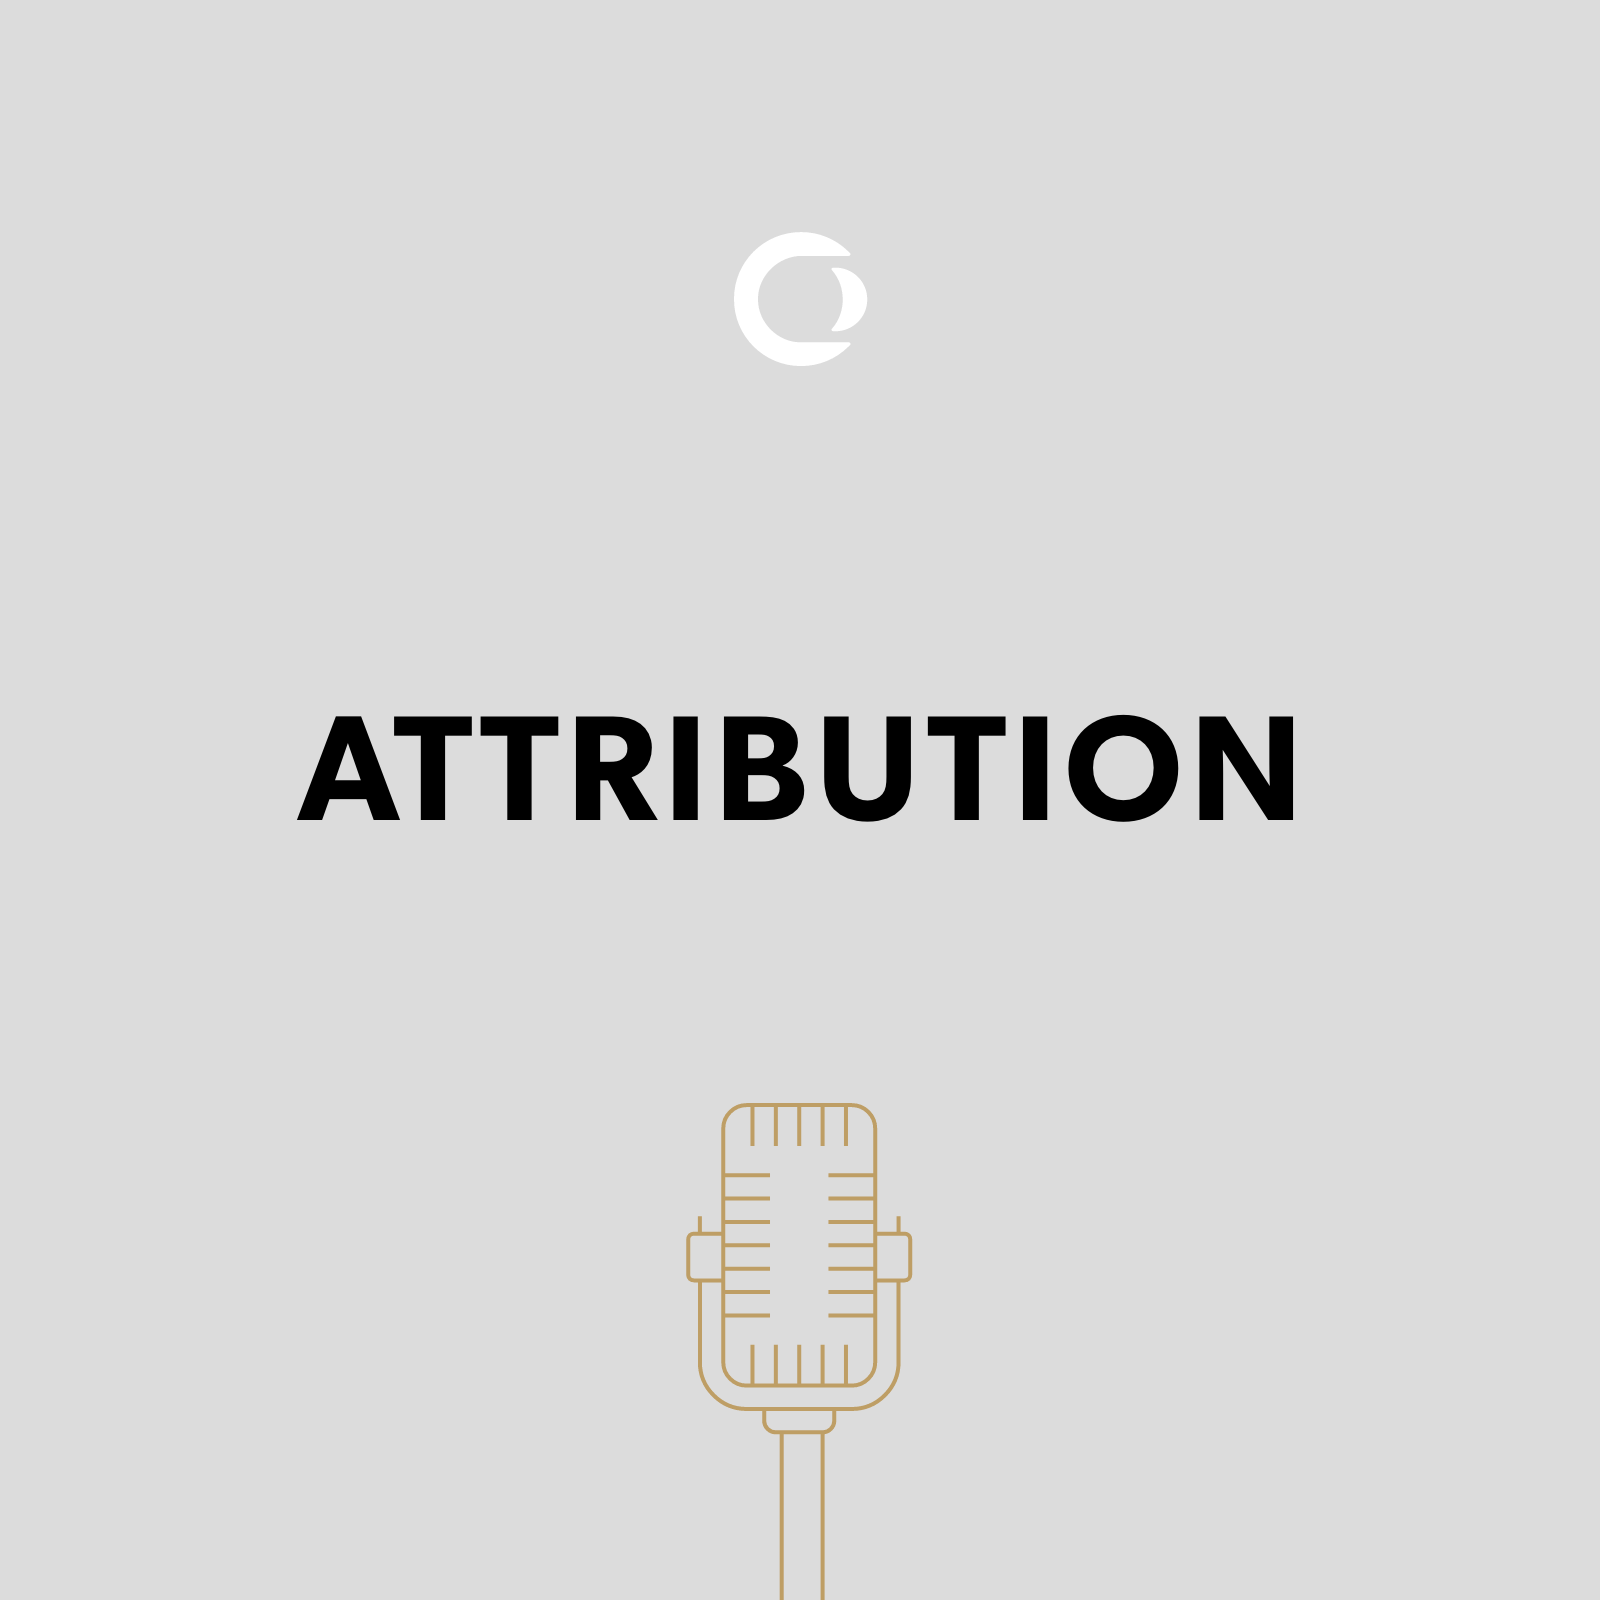 [Podcast] The role of attribution in digital media